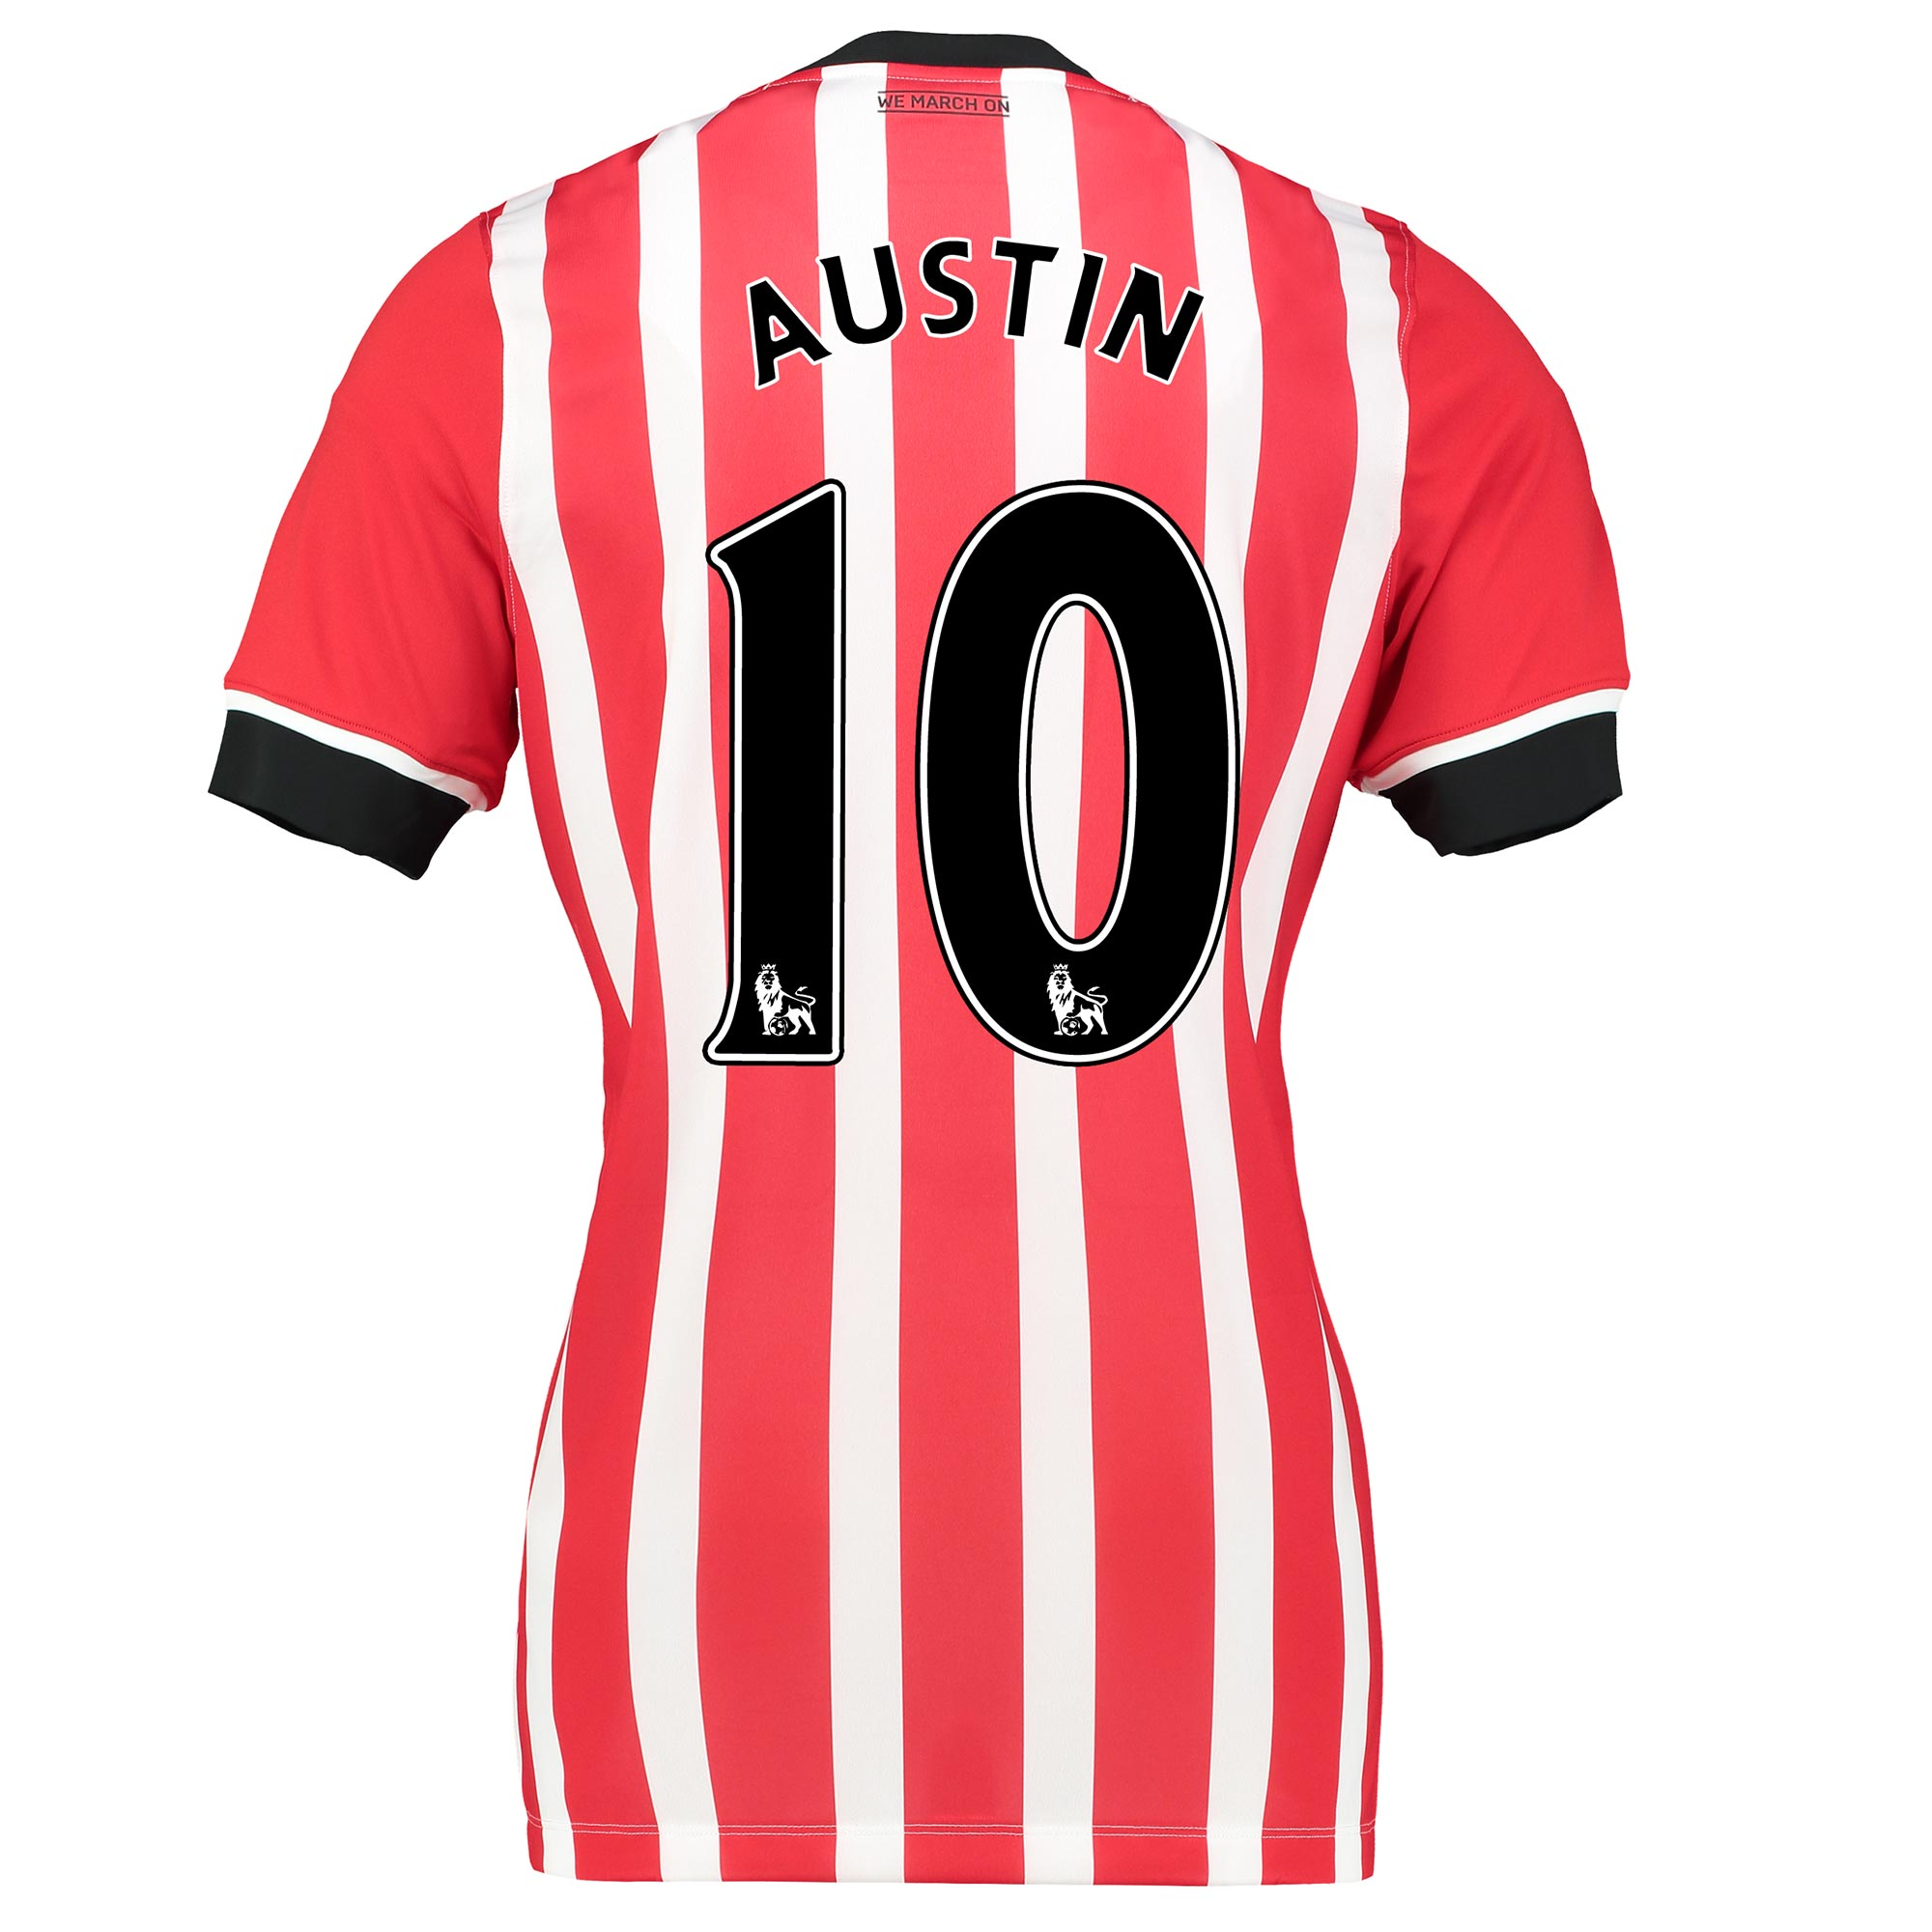 Image of Southampton Home Shirt 2016-17 - Womens Red with Charlie Austin 10 pri, Red